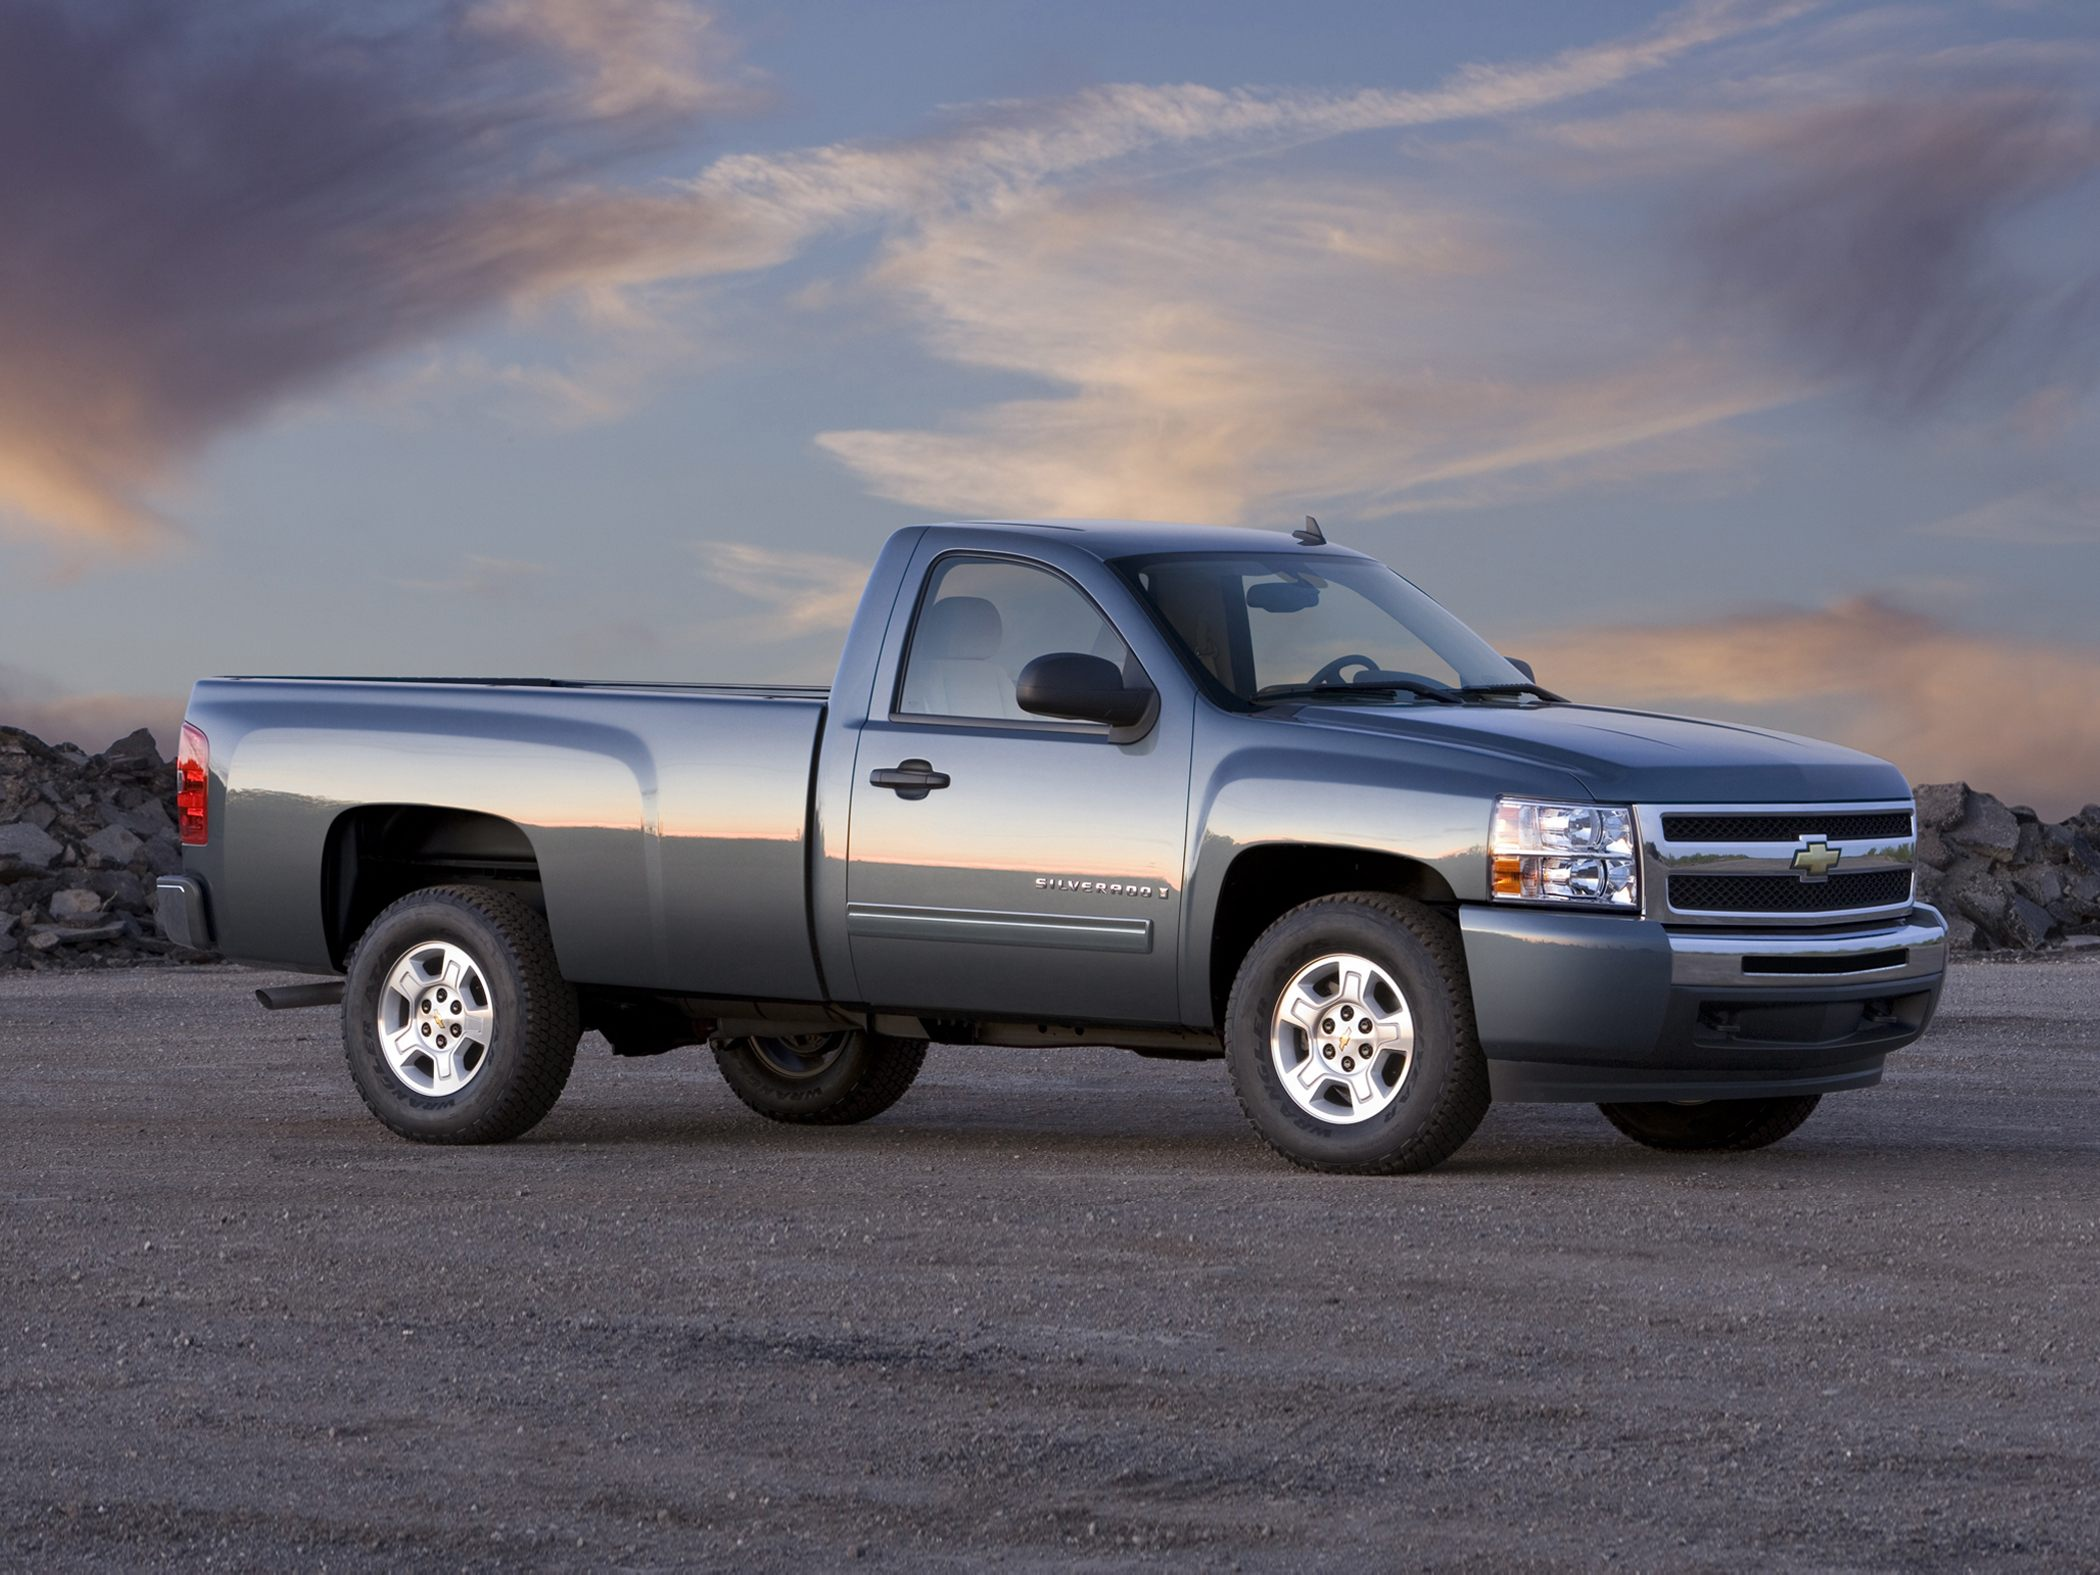 wadena silverado for vehicle in chevrolet sk photo all vehicles vehiclesearchresults sale